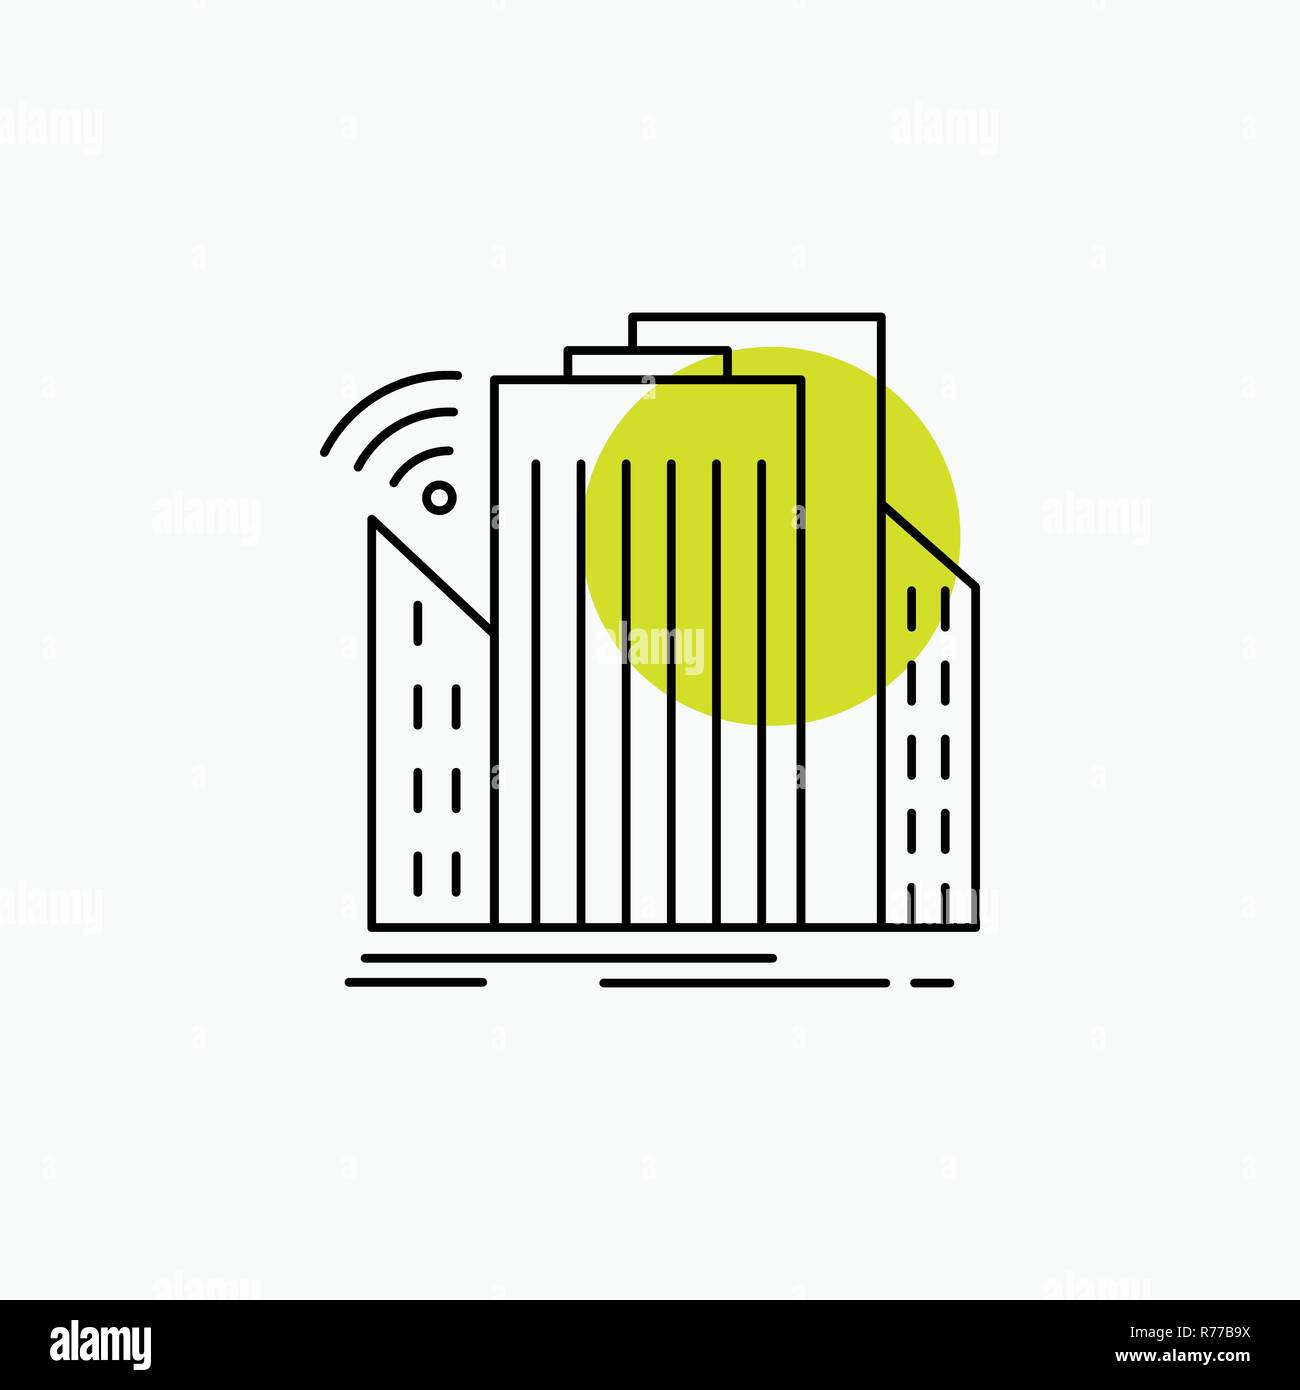 Buildings, city, sensor, smart, urban Line Icon - Stock Vector